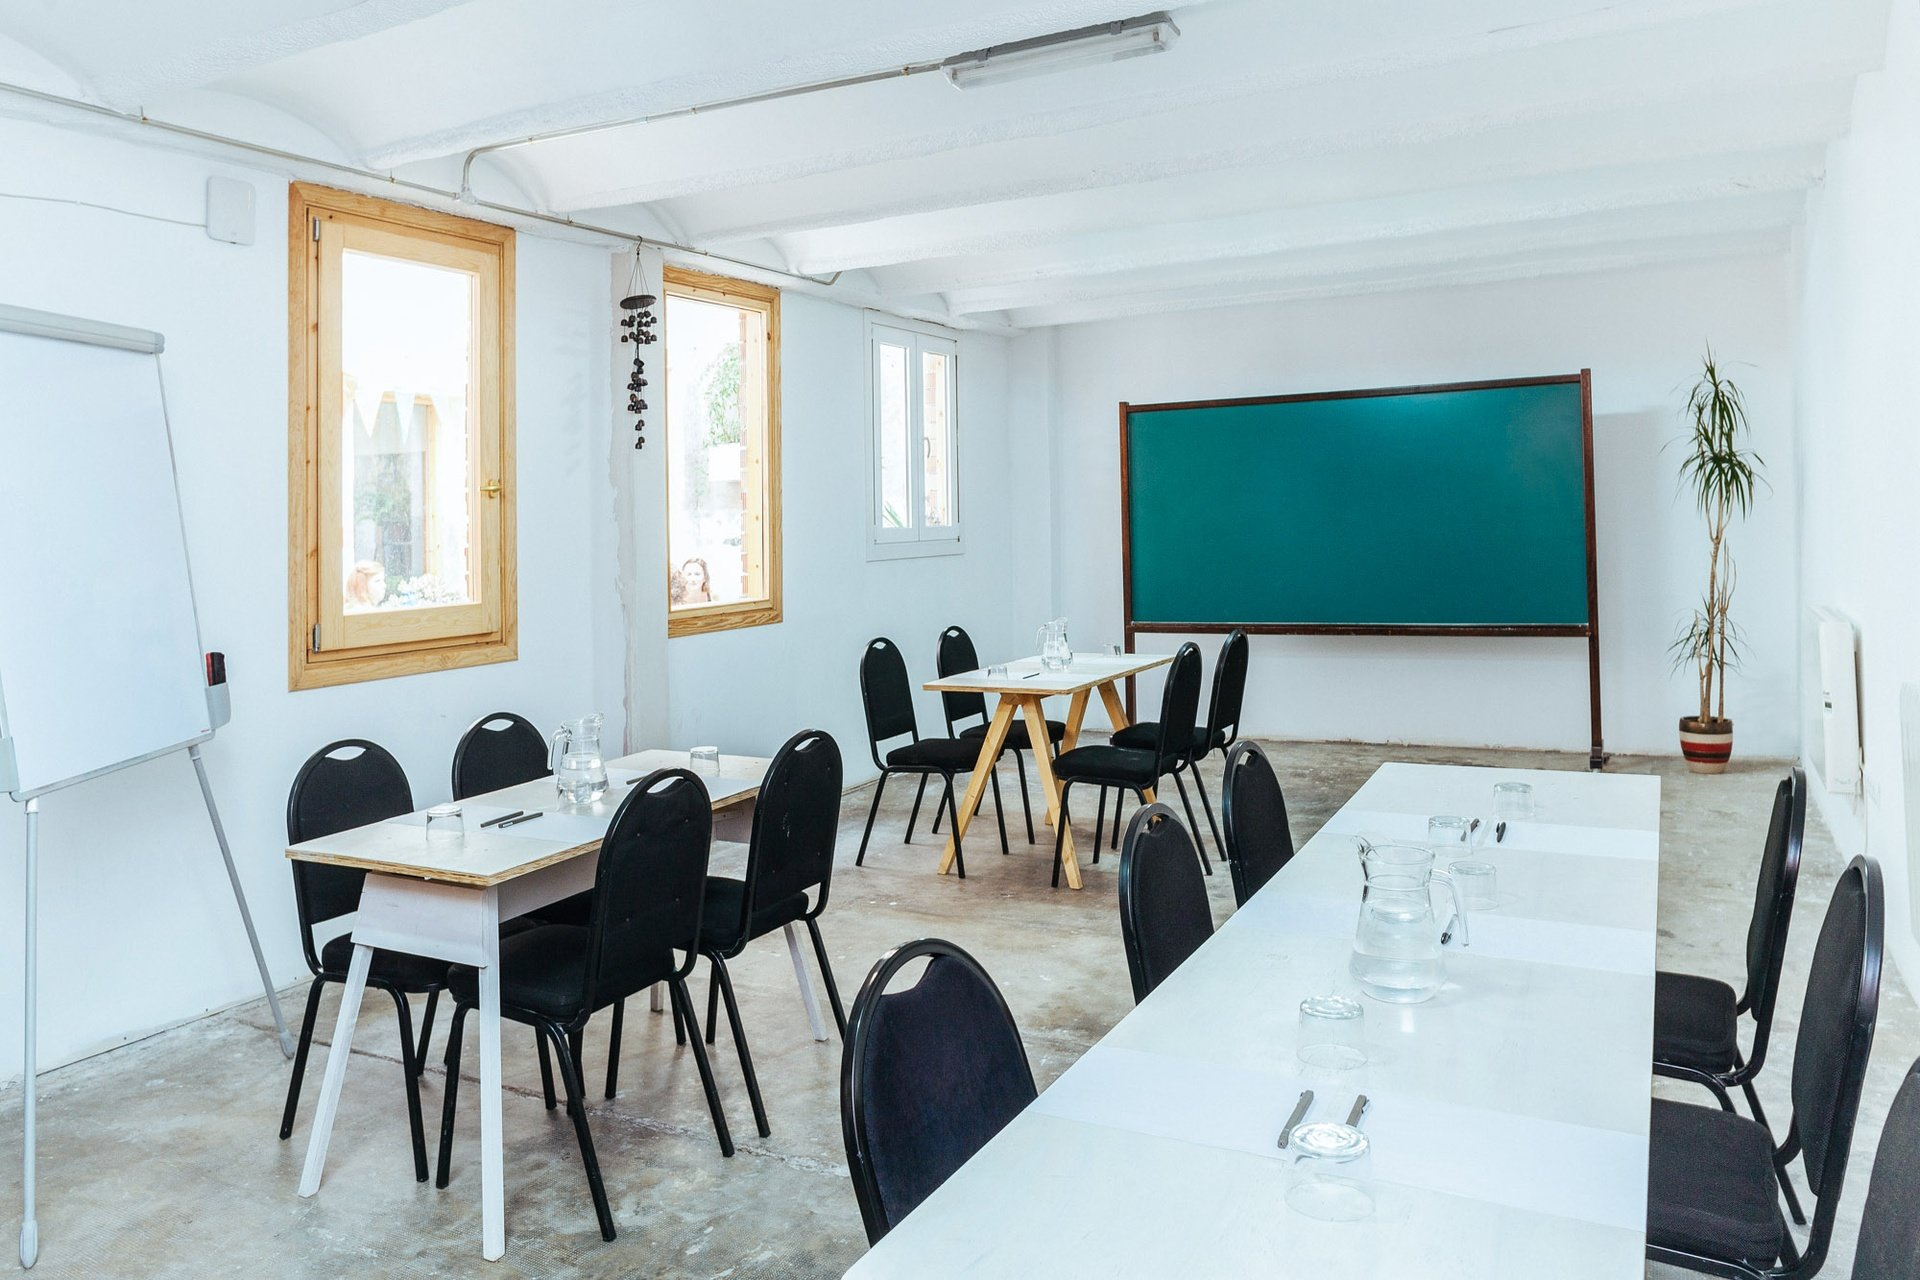 Barcelona workshop spaces Meeting room Betahaus - Classroom image 0